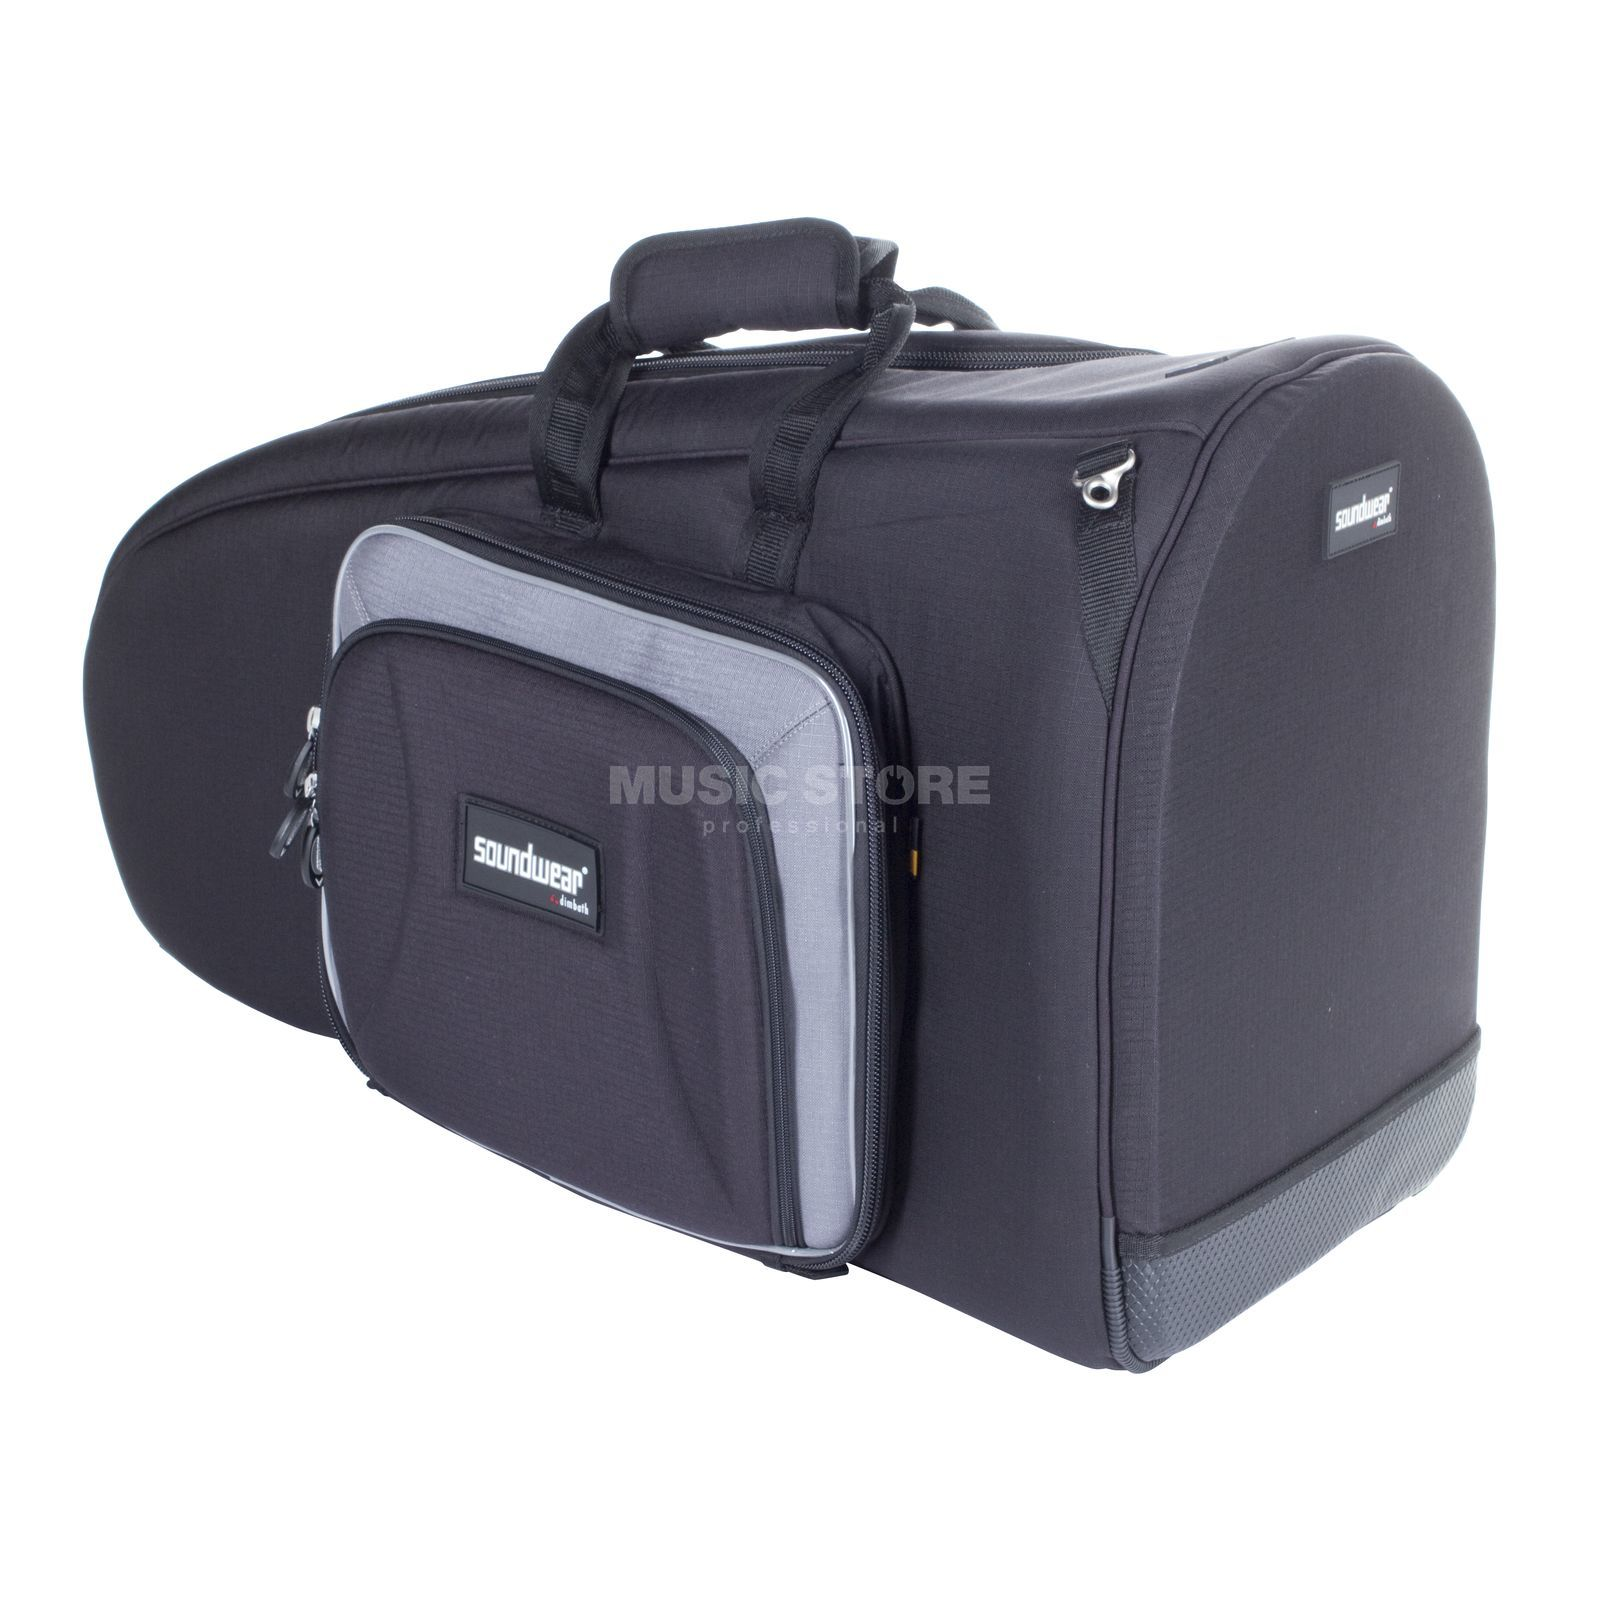 Soundwear Performer Euphonium Bag - Black - Ï 30 cm, 68 cm Product Image